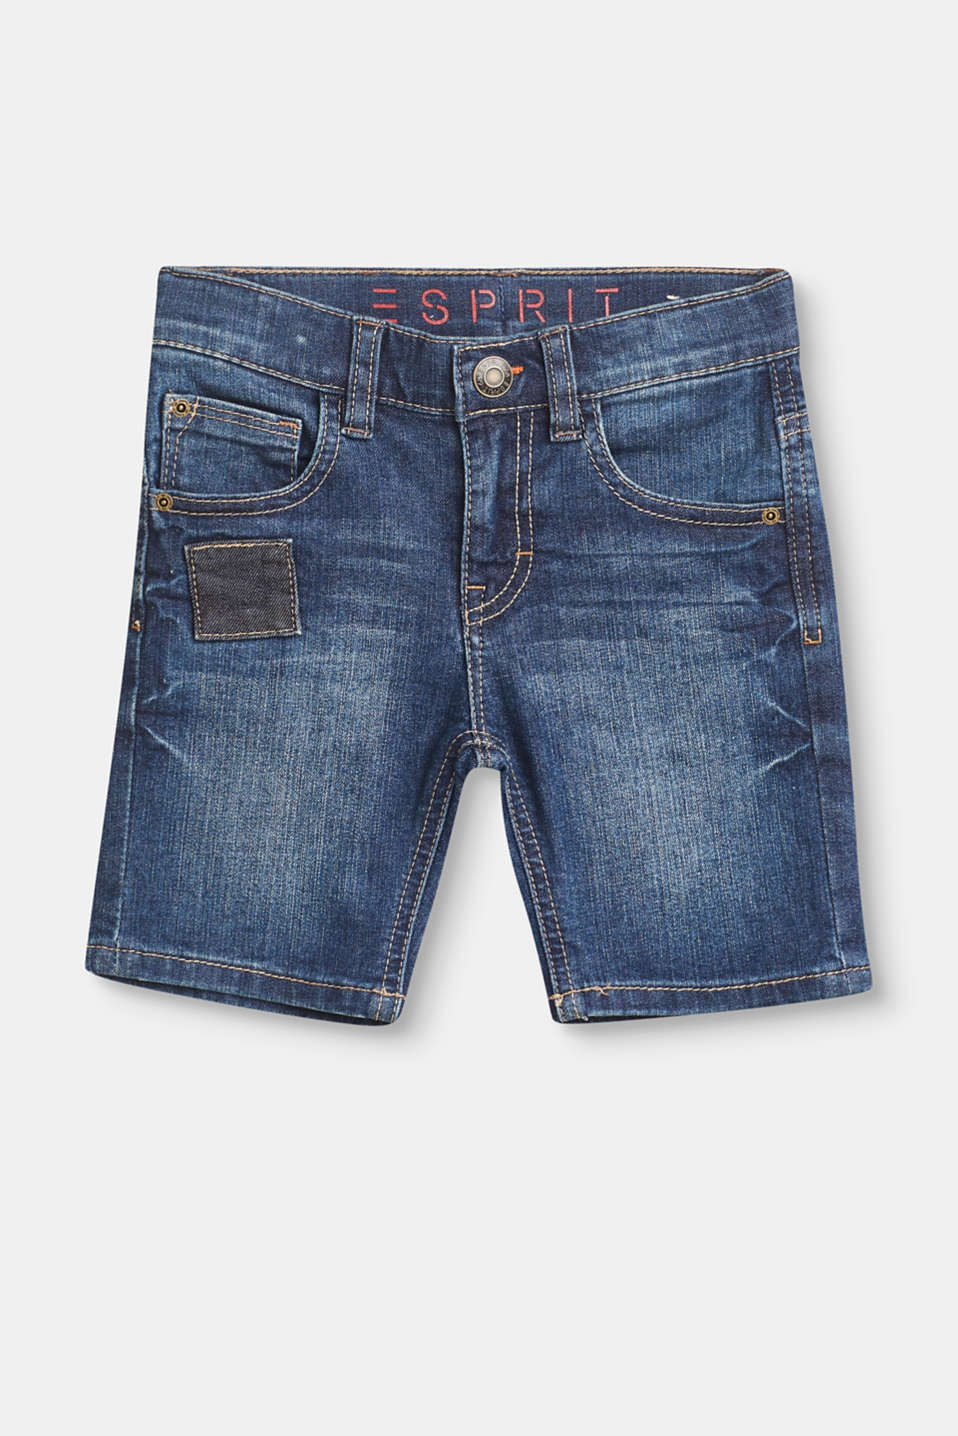 Esprit - Denim shorts with stretch, an adjustable waistband and appliqués